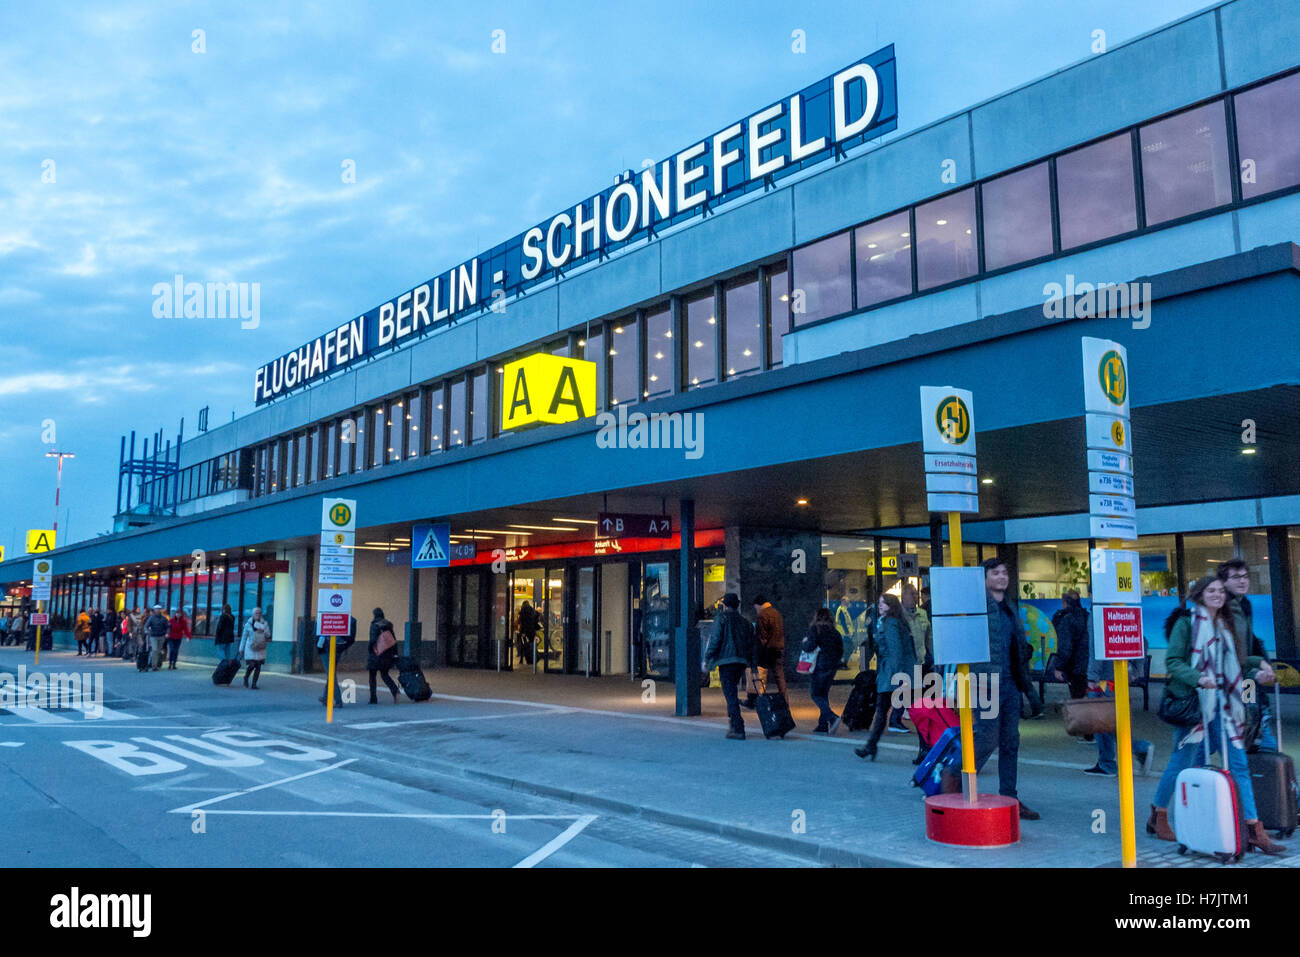 The main building at Berlin's Schoenefeld Airport at dusk - Stock Image